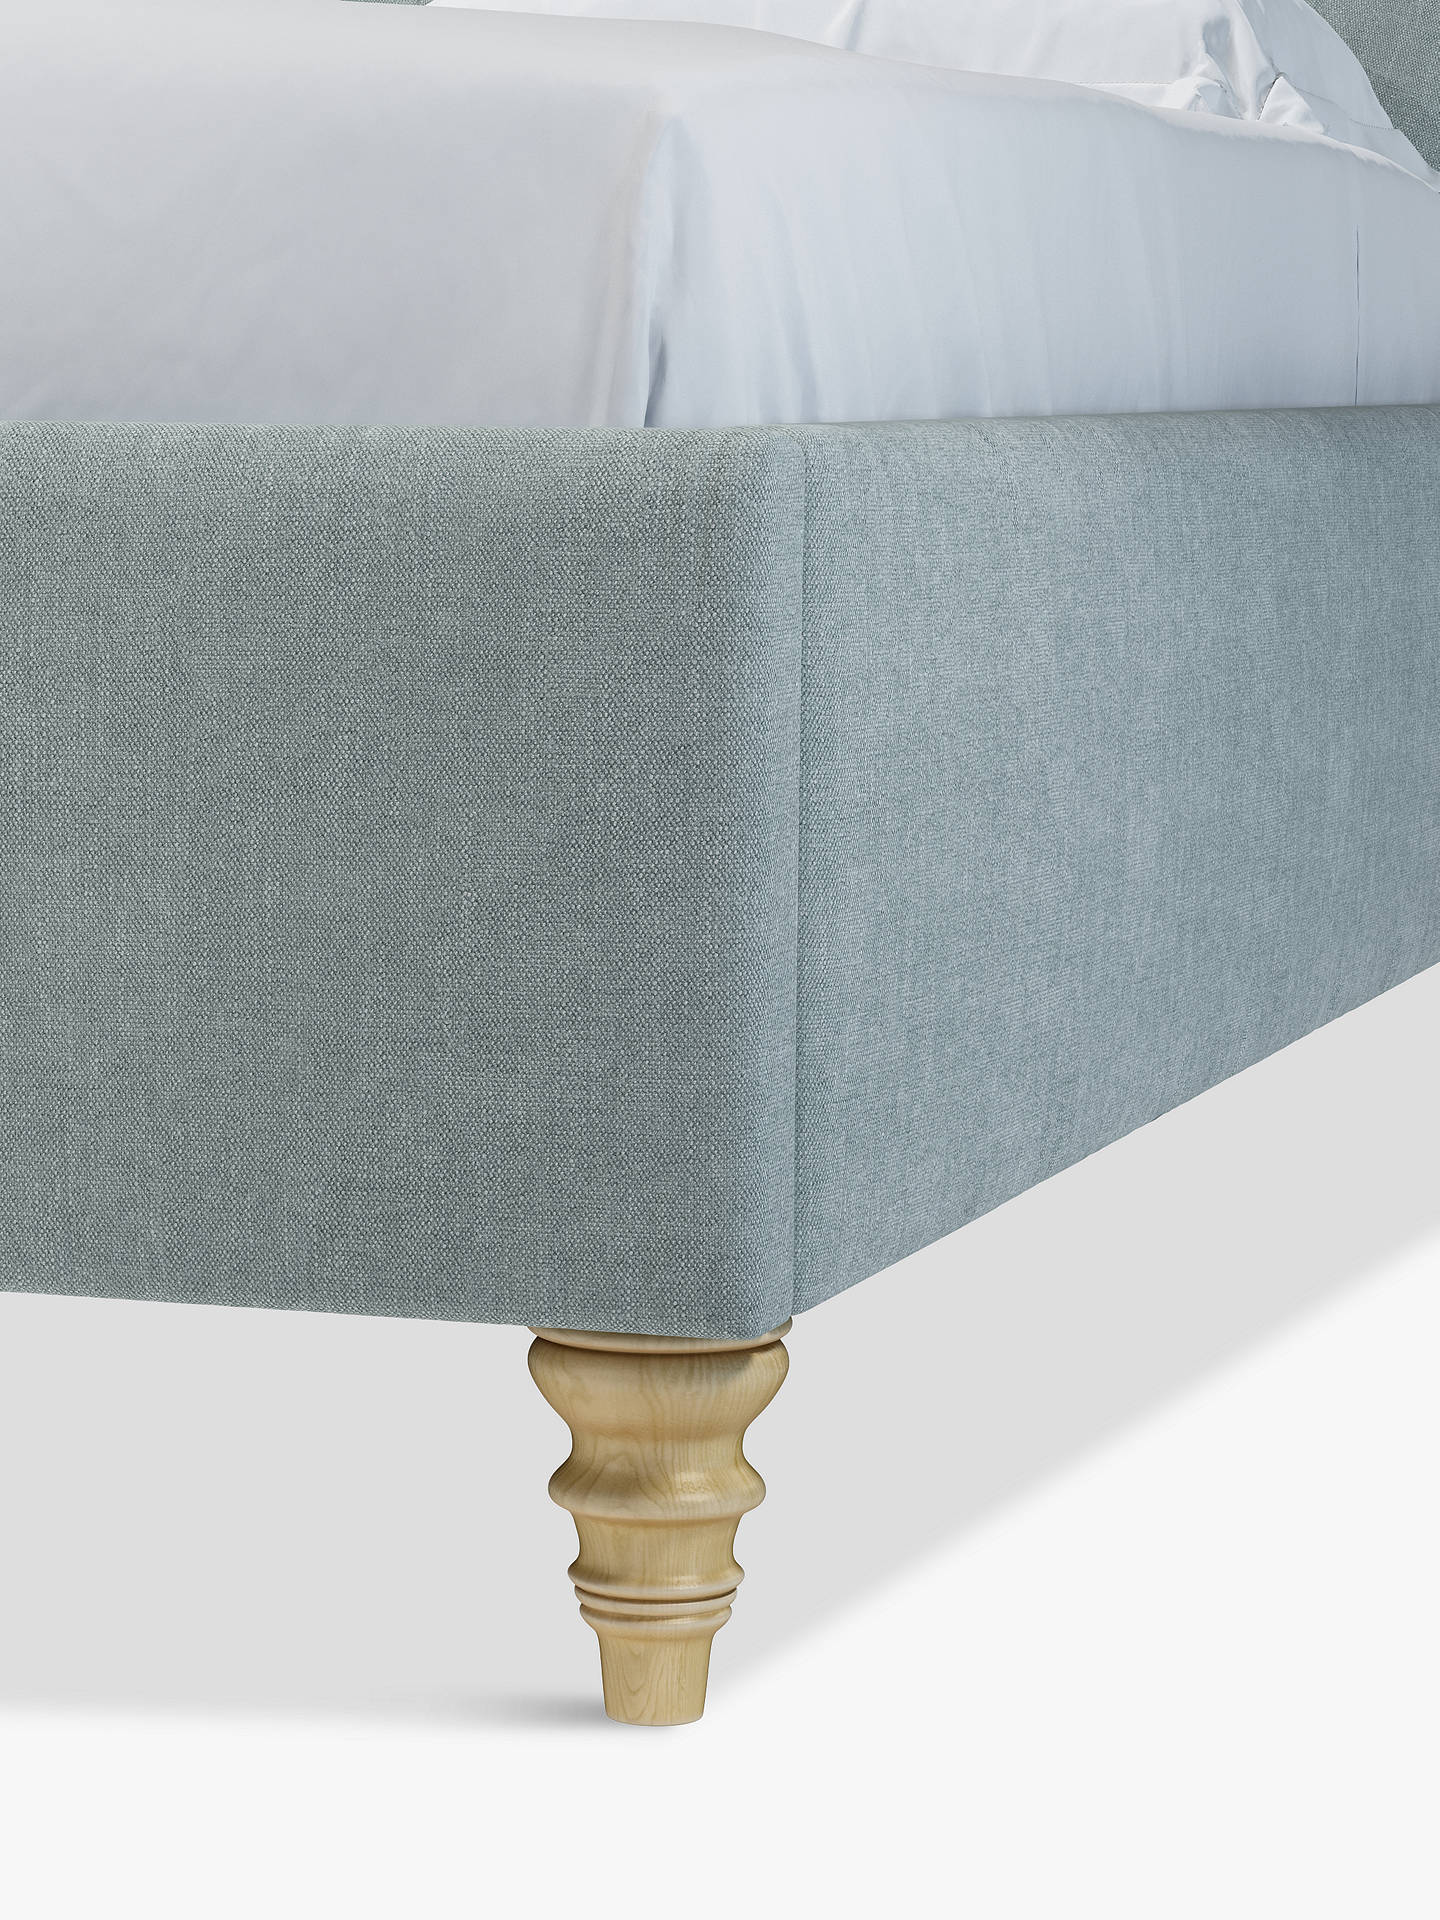 Buy John Lewis & Partners Rouen Upholstered Bed Frame, Double, Erin Duck Egg Online at johnlewis.com